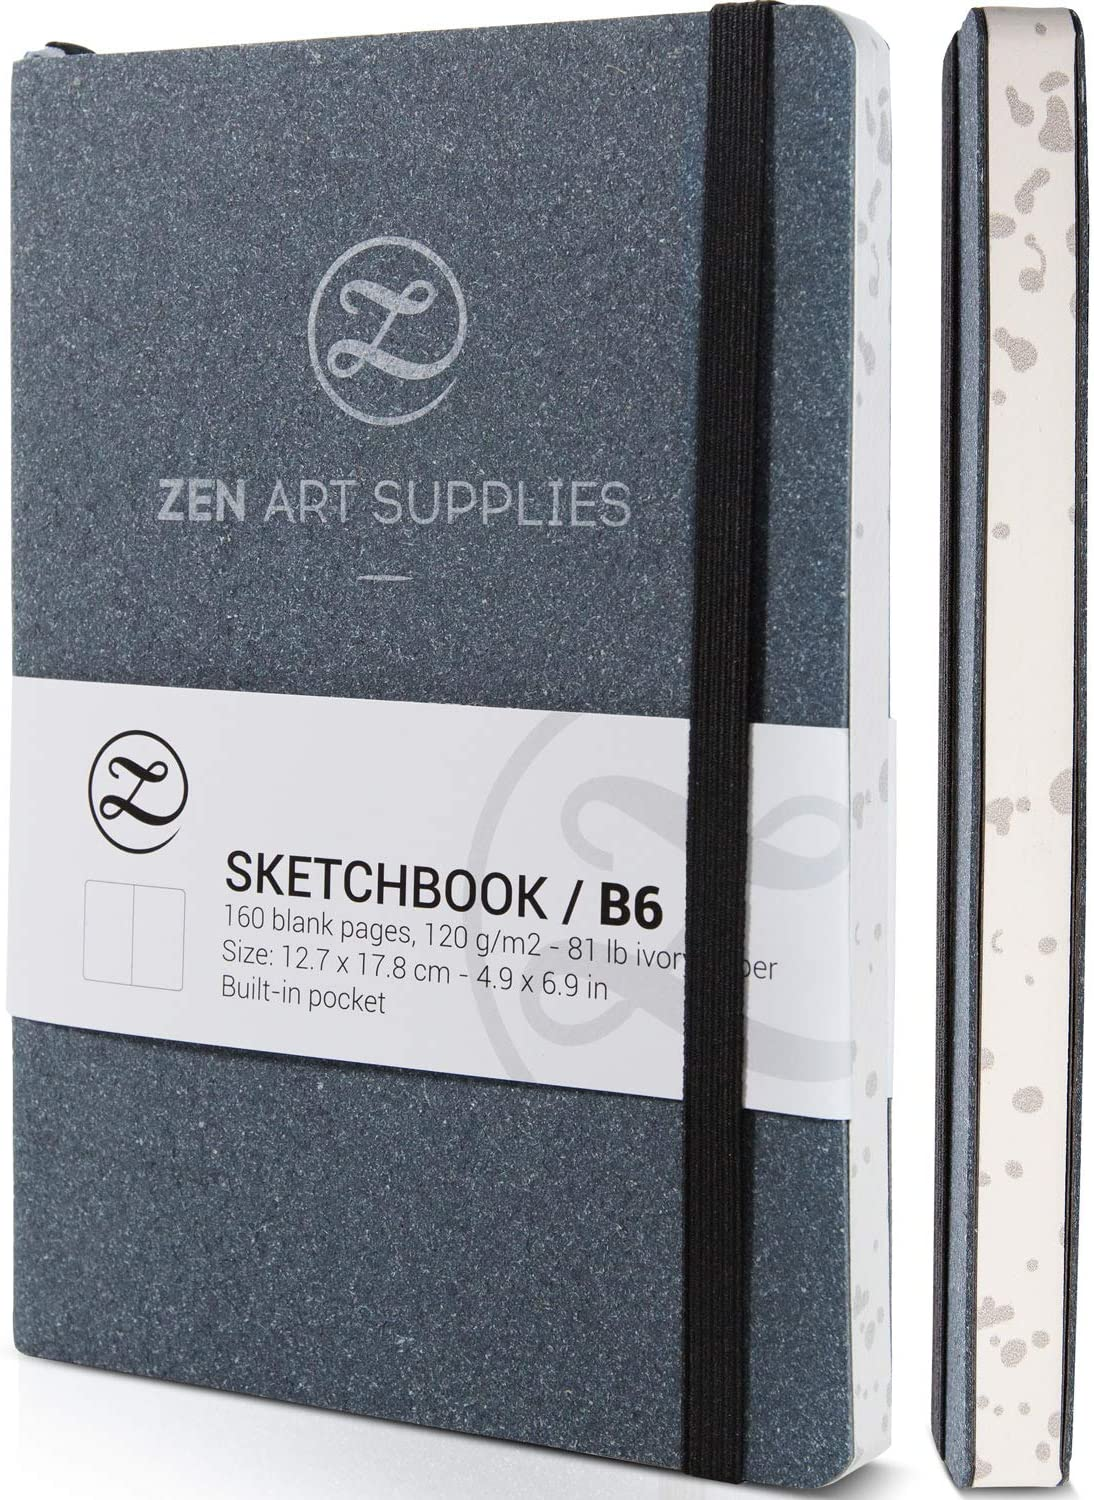 ZenART Leather Sketchbook Journal for Artists - 160 Blank Pages of 120 GSM Acid-Free Ivory Paper – B6 5 x 7-inch Lay Flat Biodegradable Pocket Book for Mixed Media Drawing, Watercolor or Ink